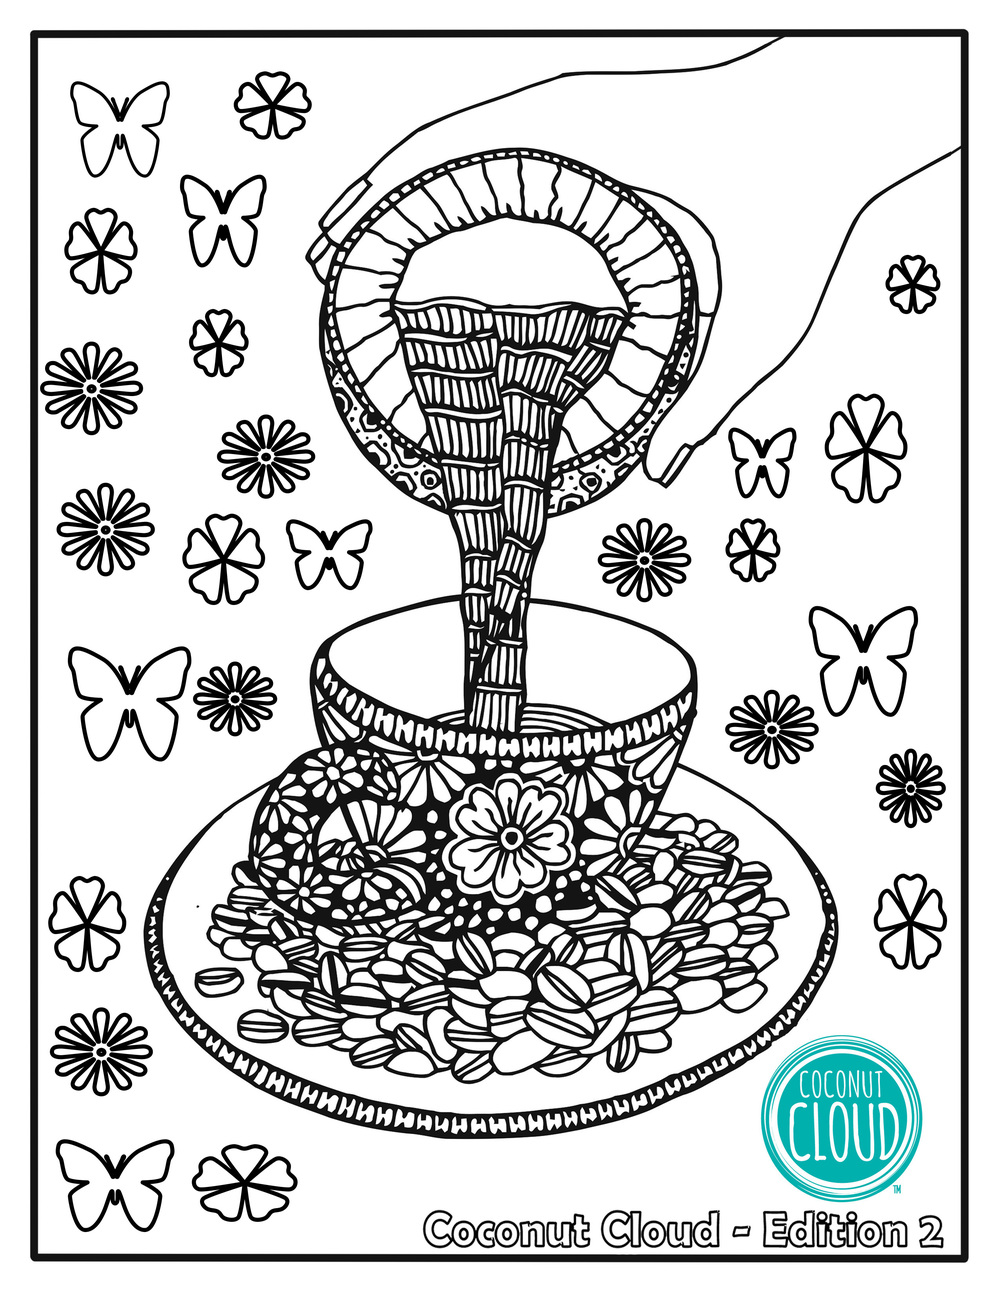 Adult Coloring Book pages Edition 2 Coconut Cloud